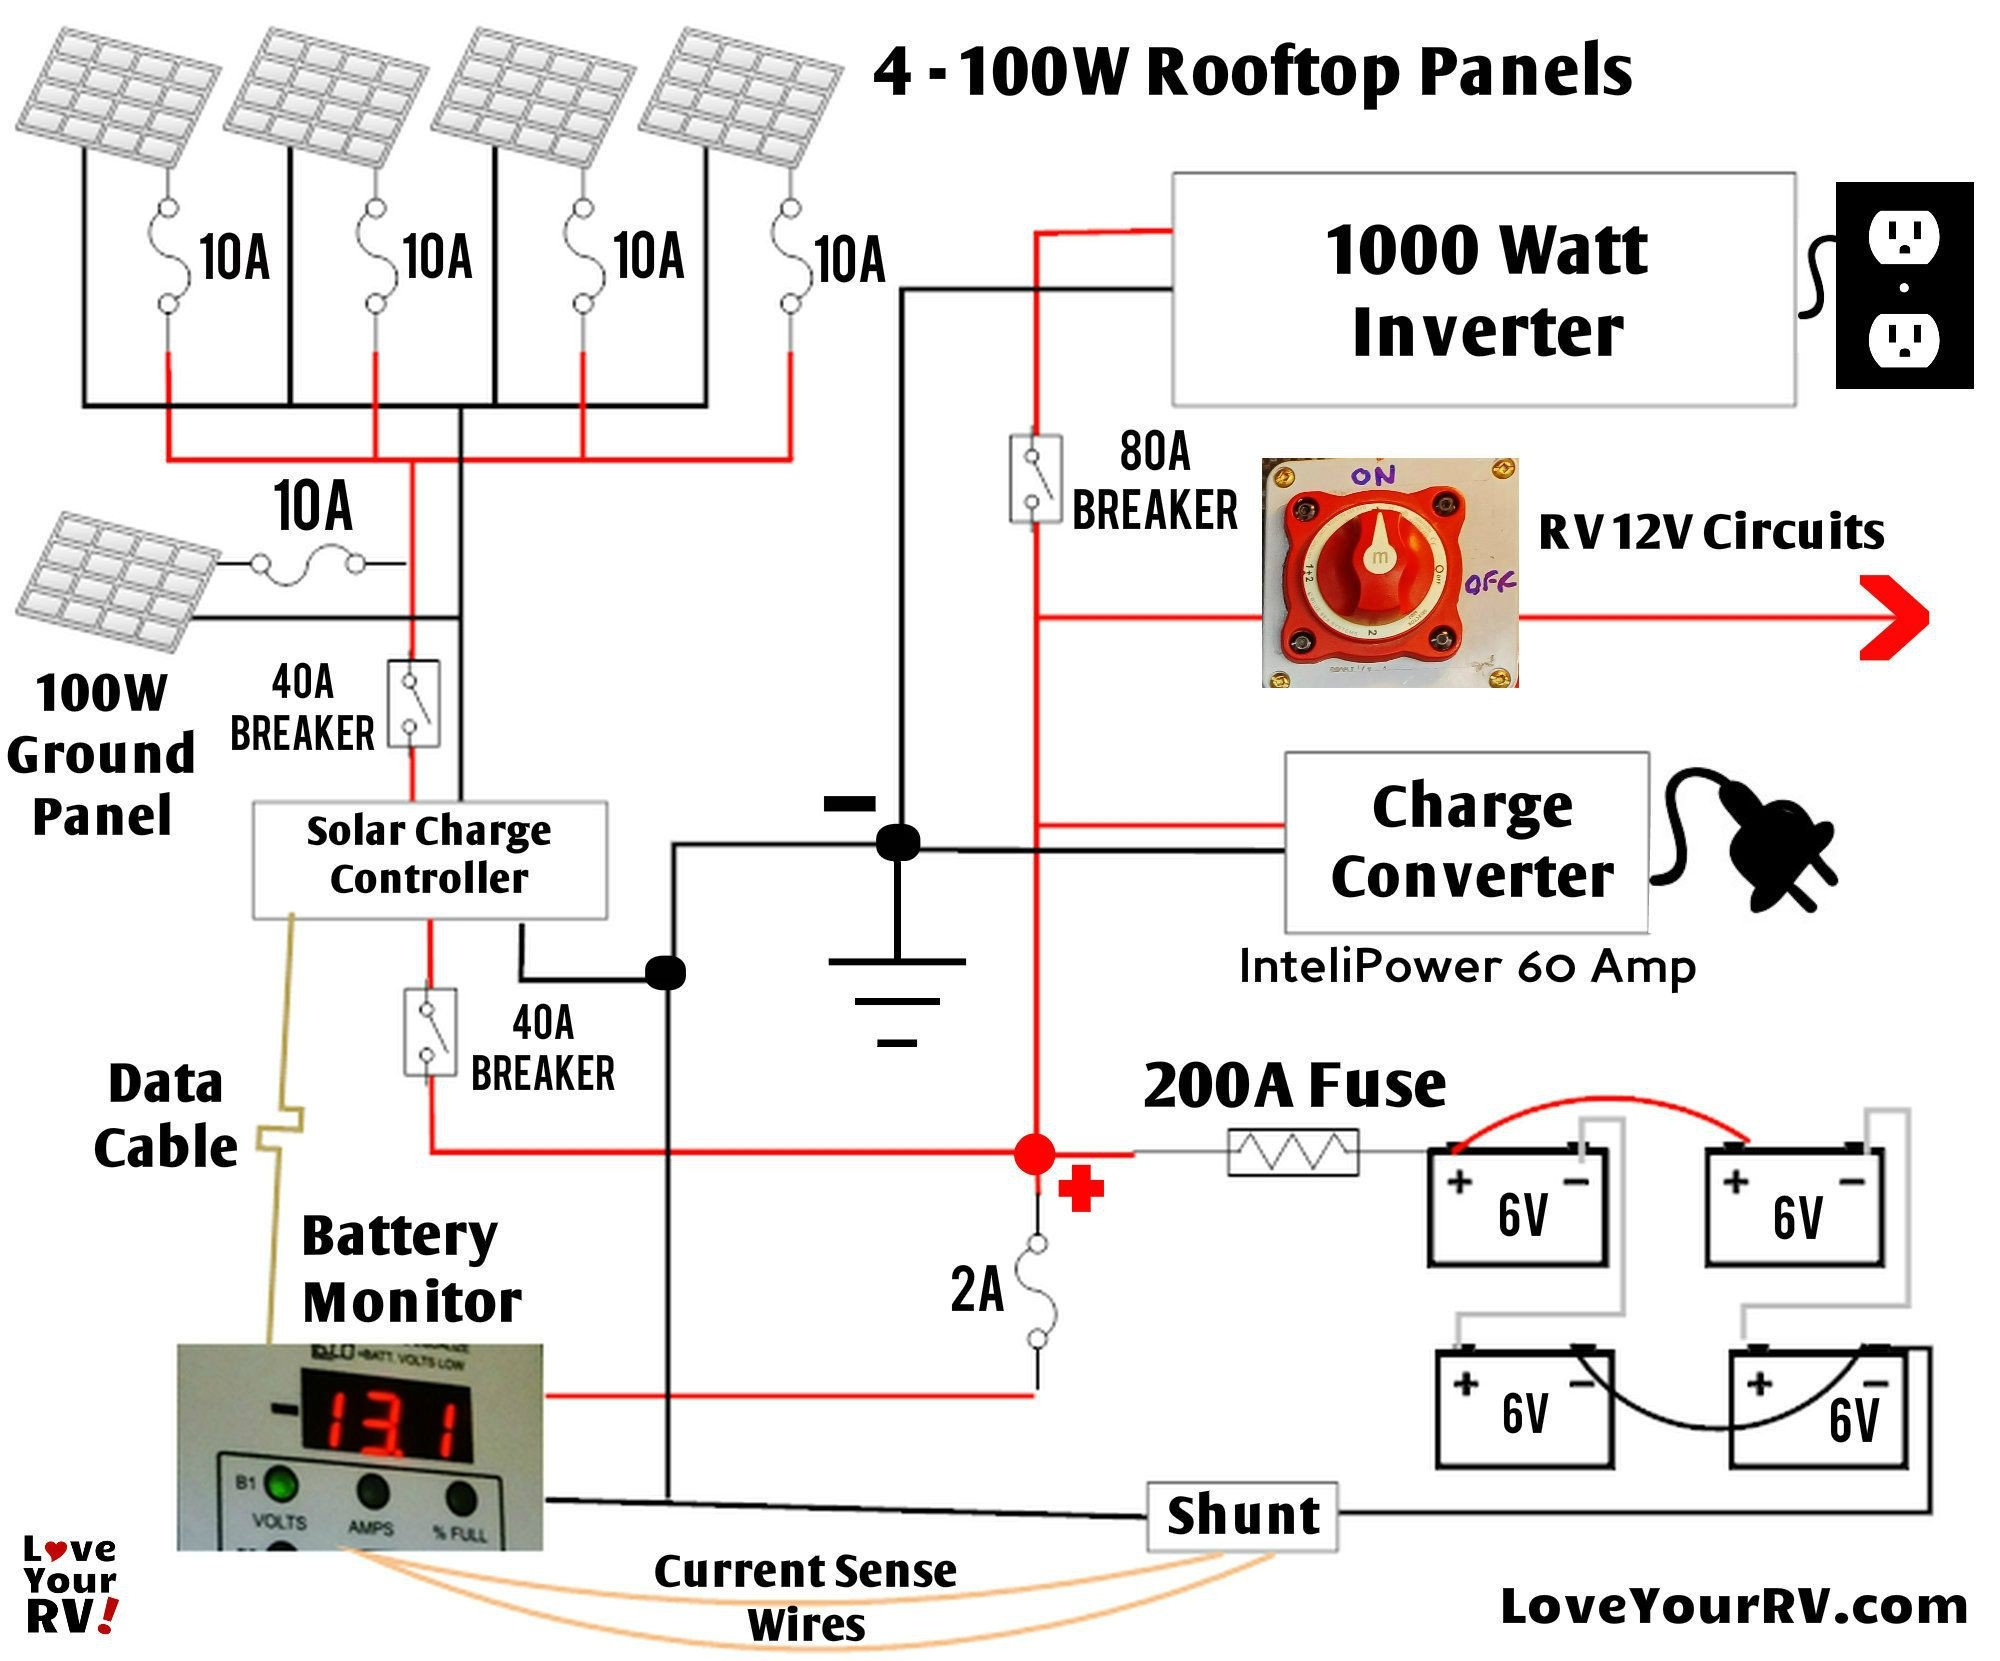 furnas esp100 wiring diagram Download-Heartland Rv Wiring Diagram Collection Furnas Esp100 Wiring Diagram Image 1-d